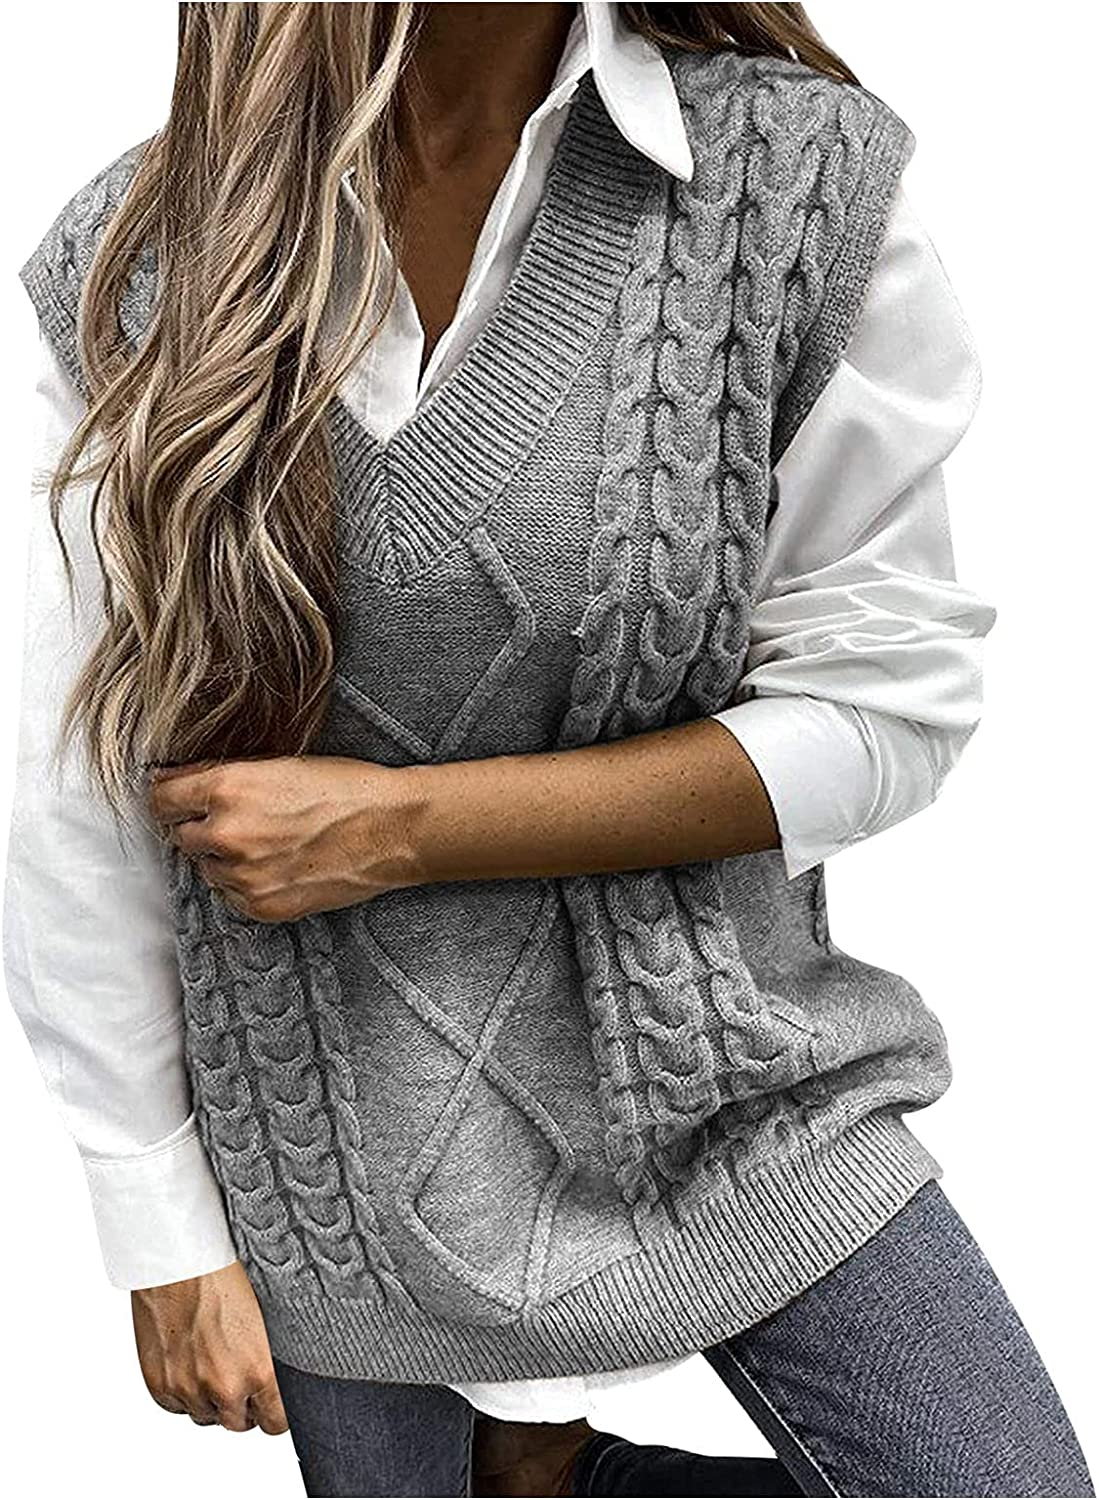 Ellymi Sweater Vest Women Oversized V Neck Sleeveless Sweaters Womens Cable Knit Tops Vintage Sweaters Tops